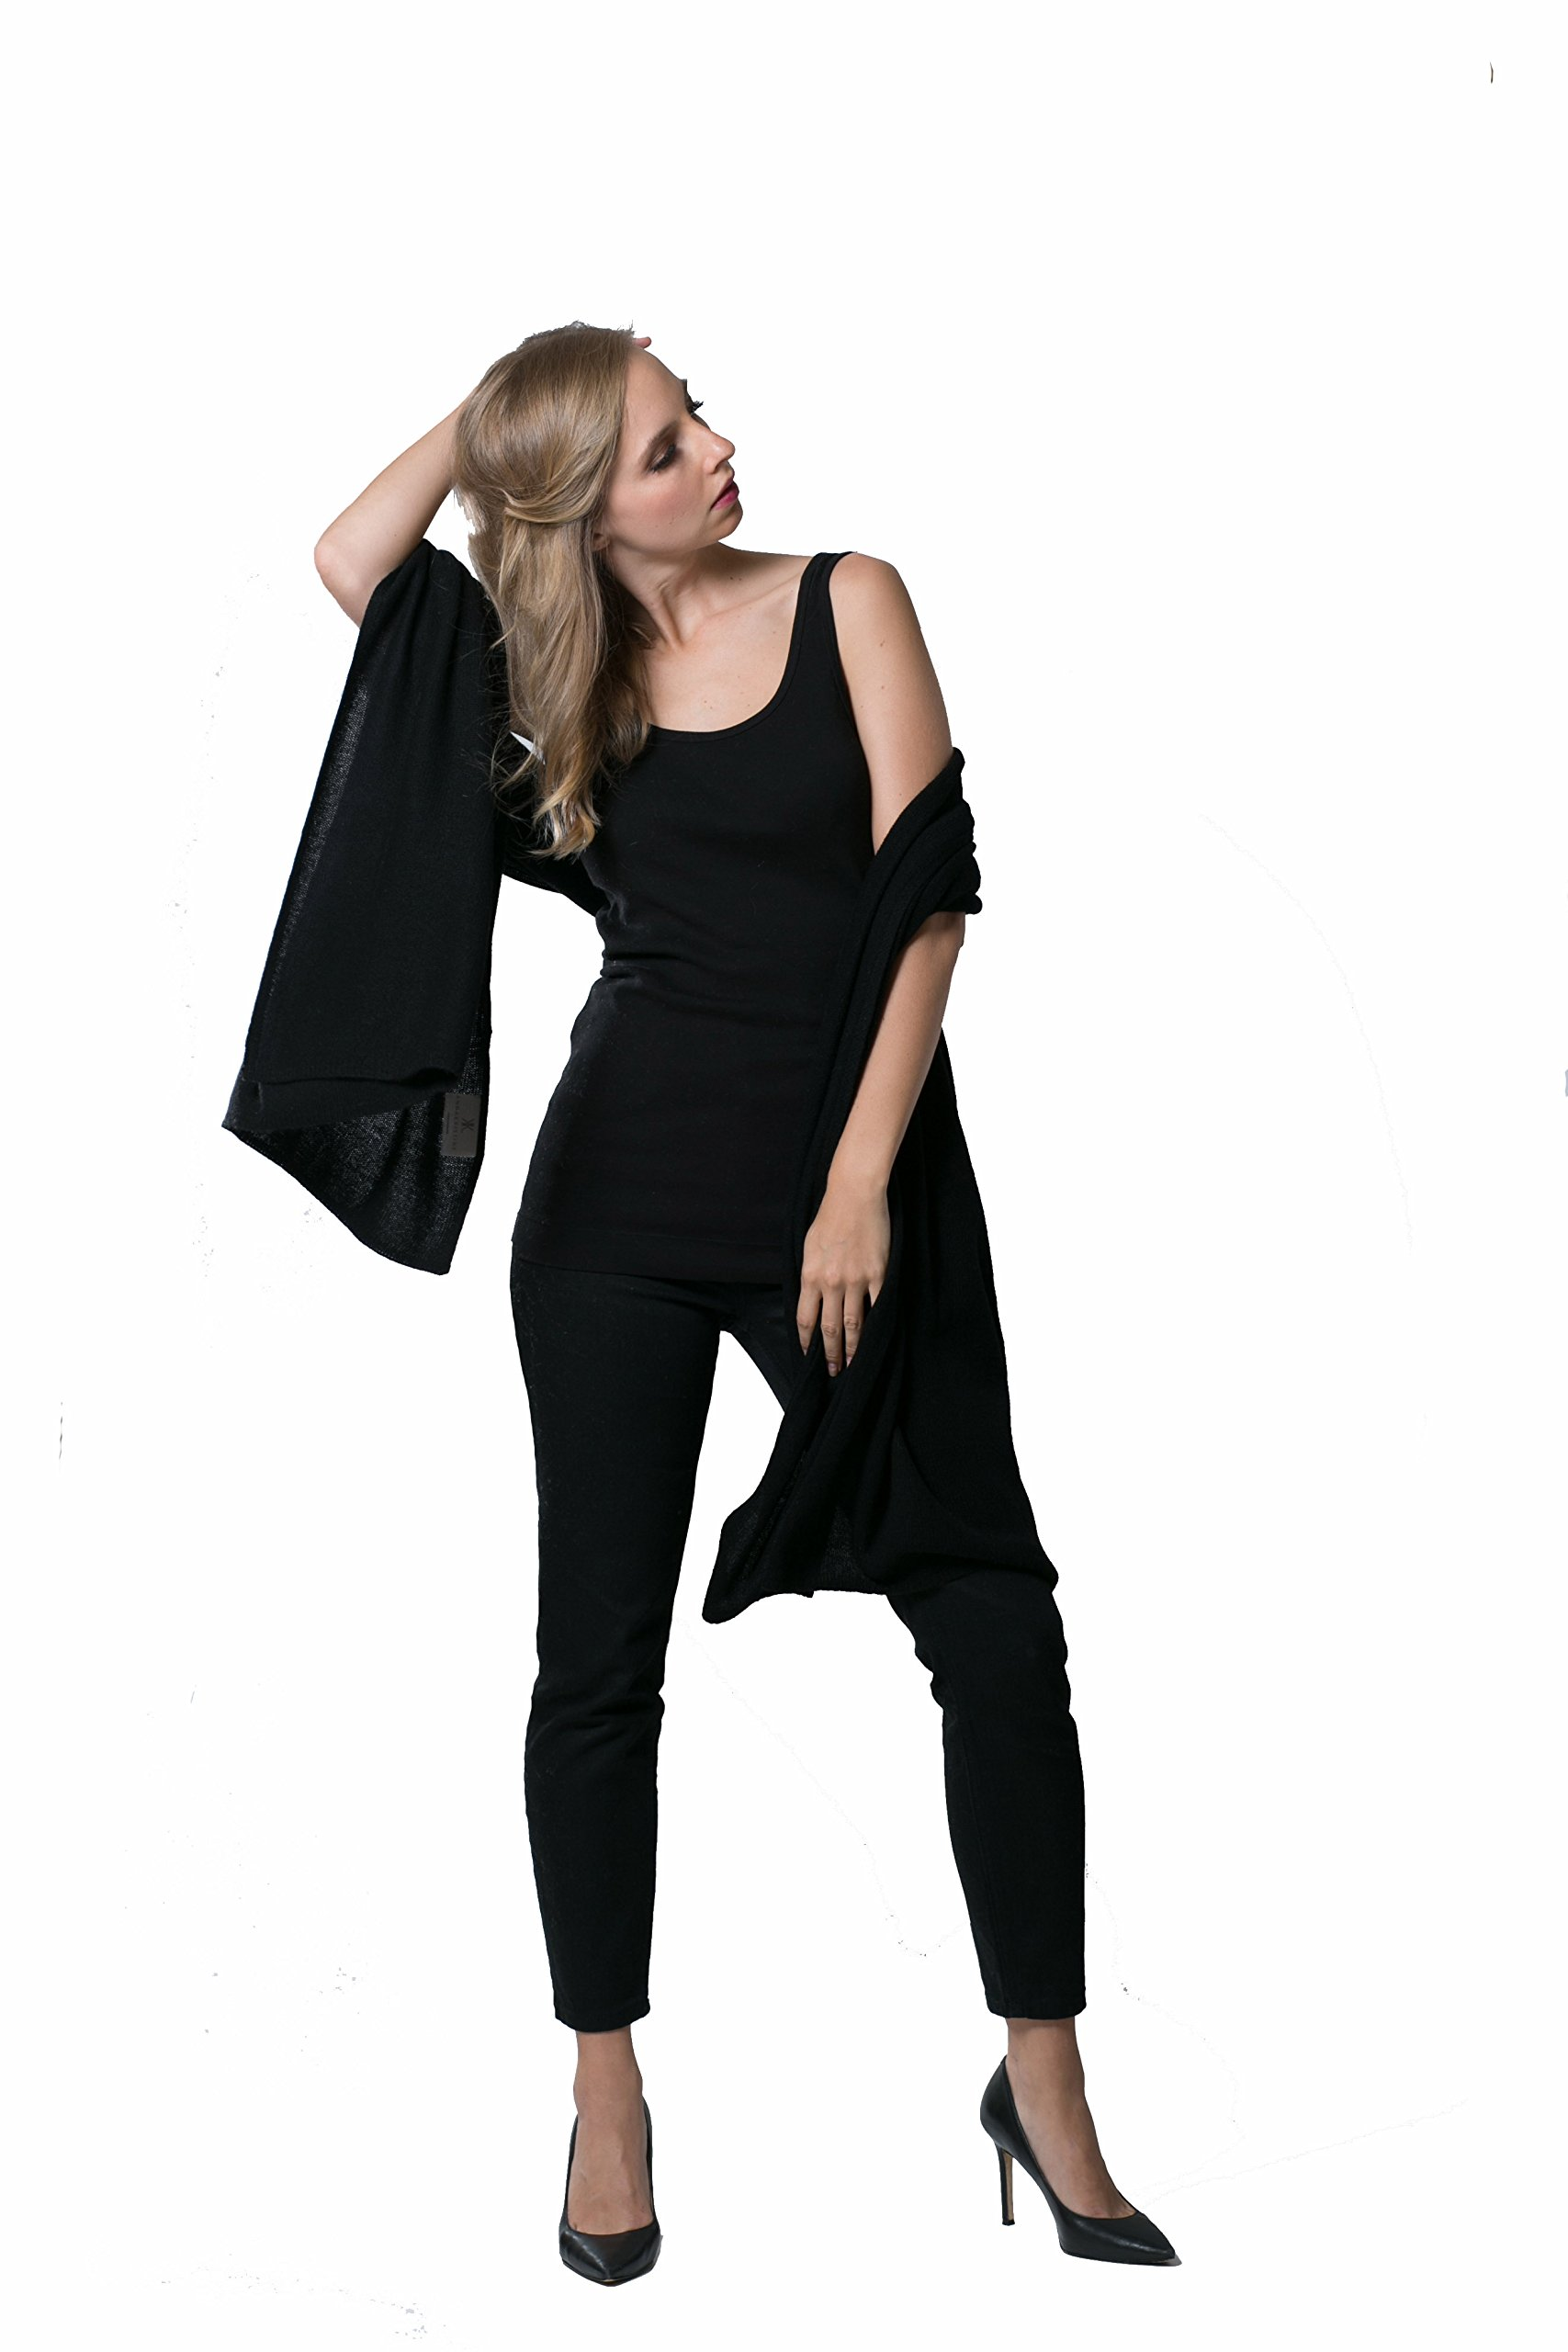 Super Soft Oversized 100% Cashmere Travel Blanket Scarf Wrap - Obsidian Black by Anna Kristine